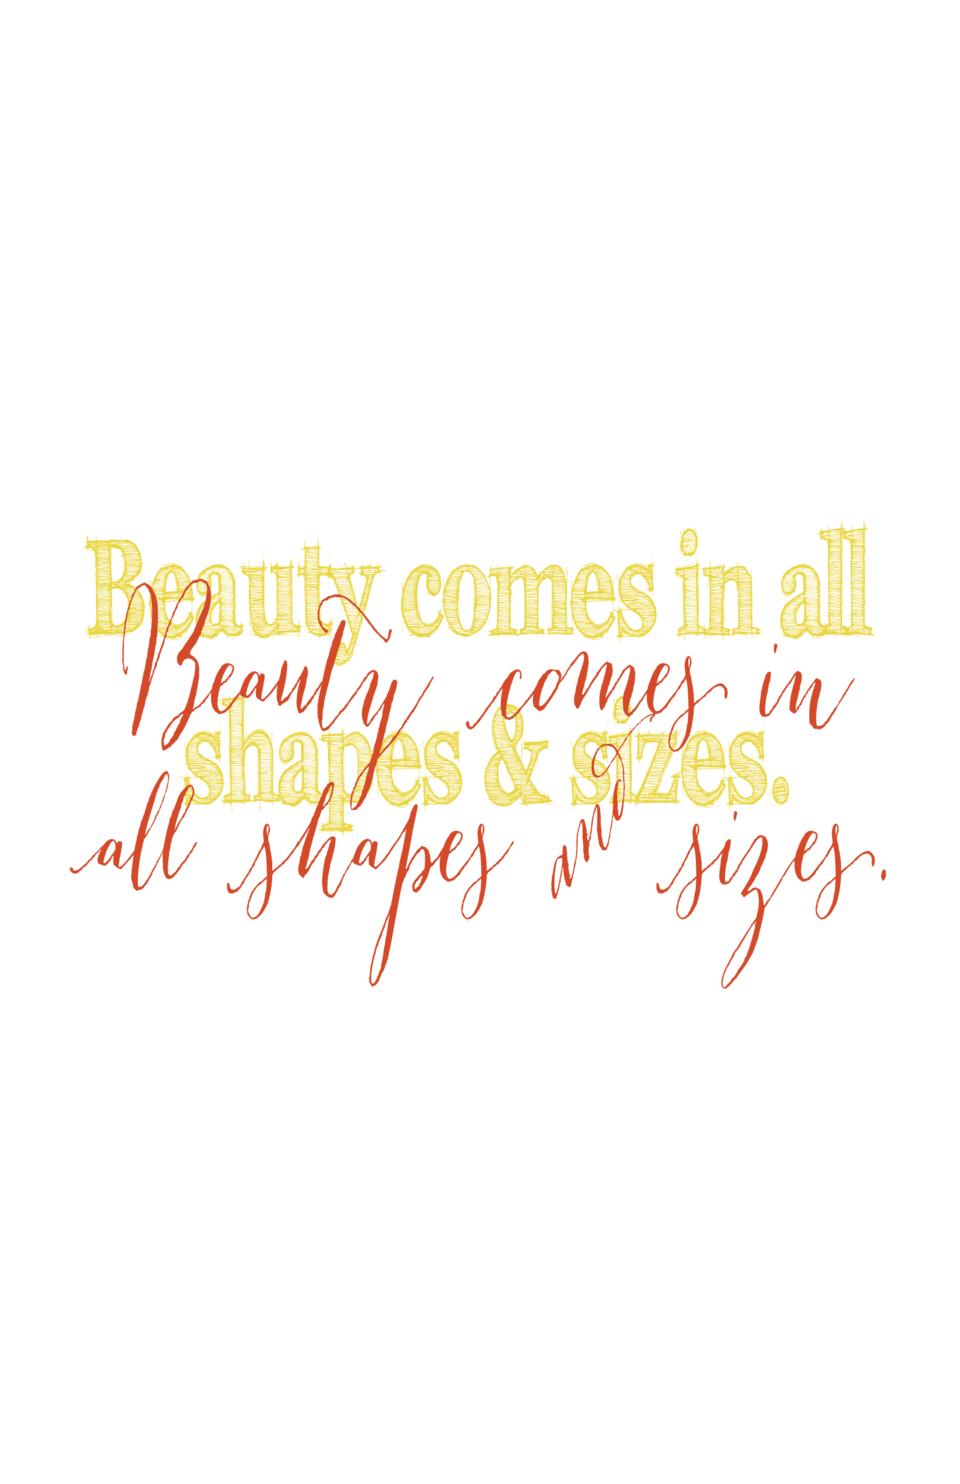 Beauty comes in all Beauty comes in shapes   sizes. all shapes andsizes.